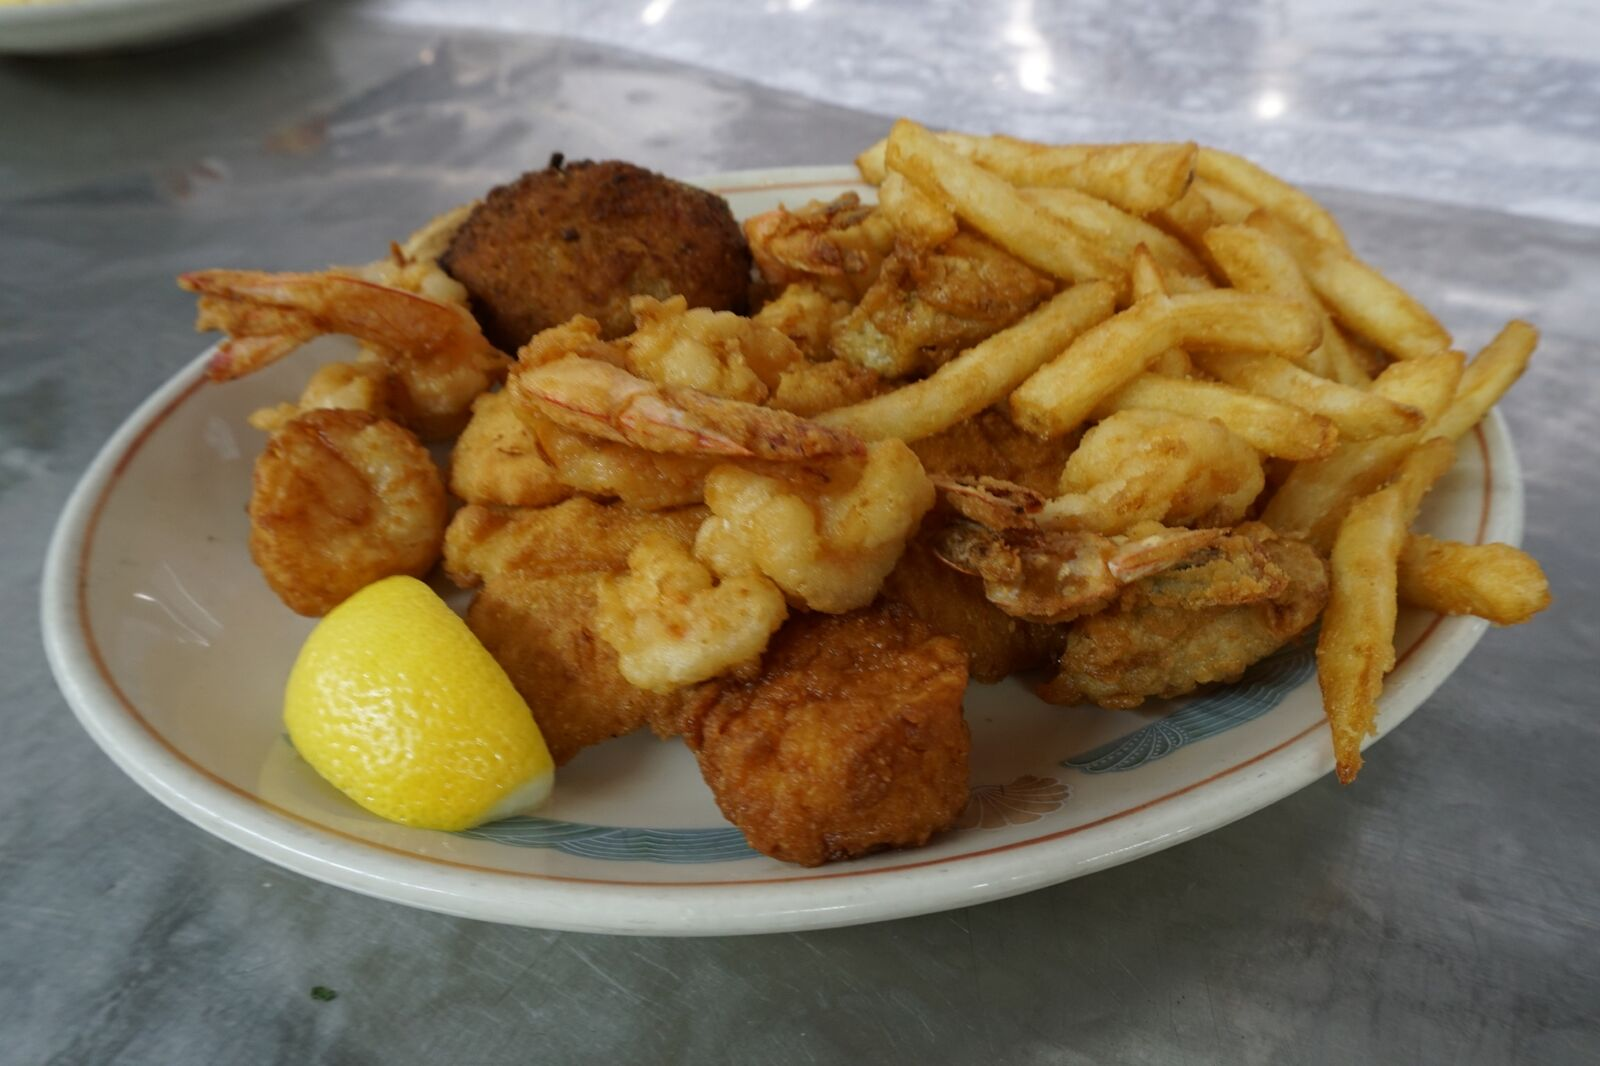 Fried Seafood specialties